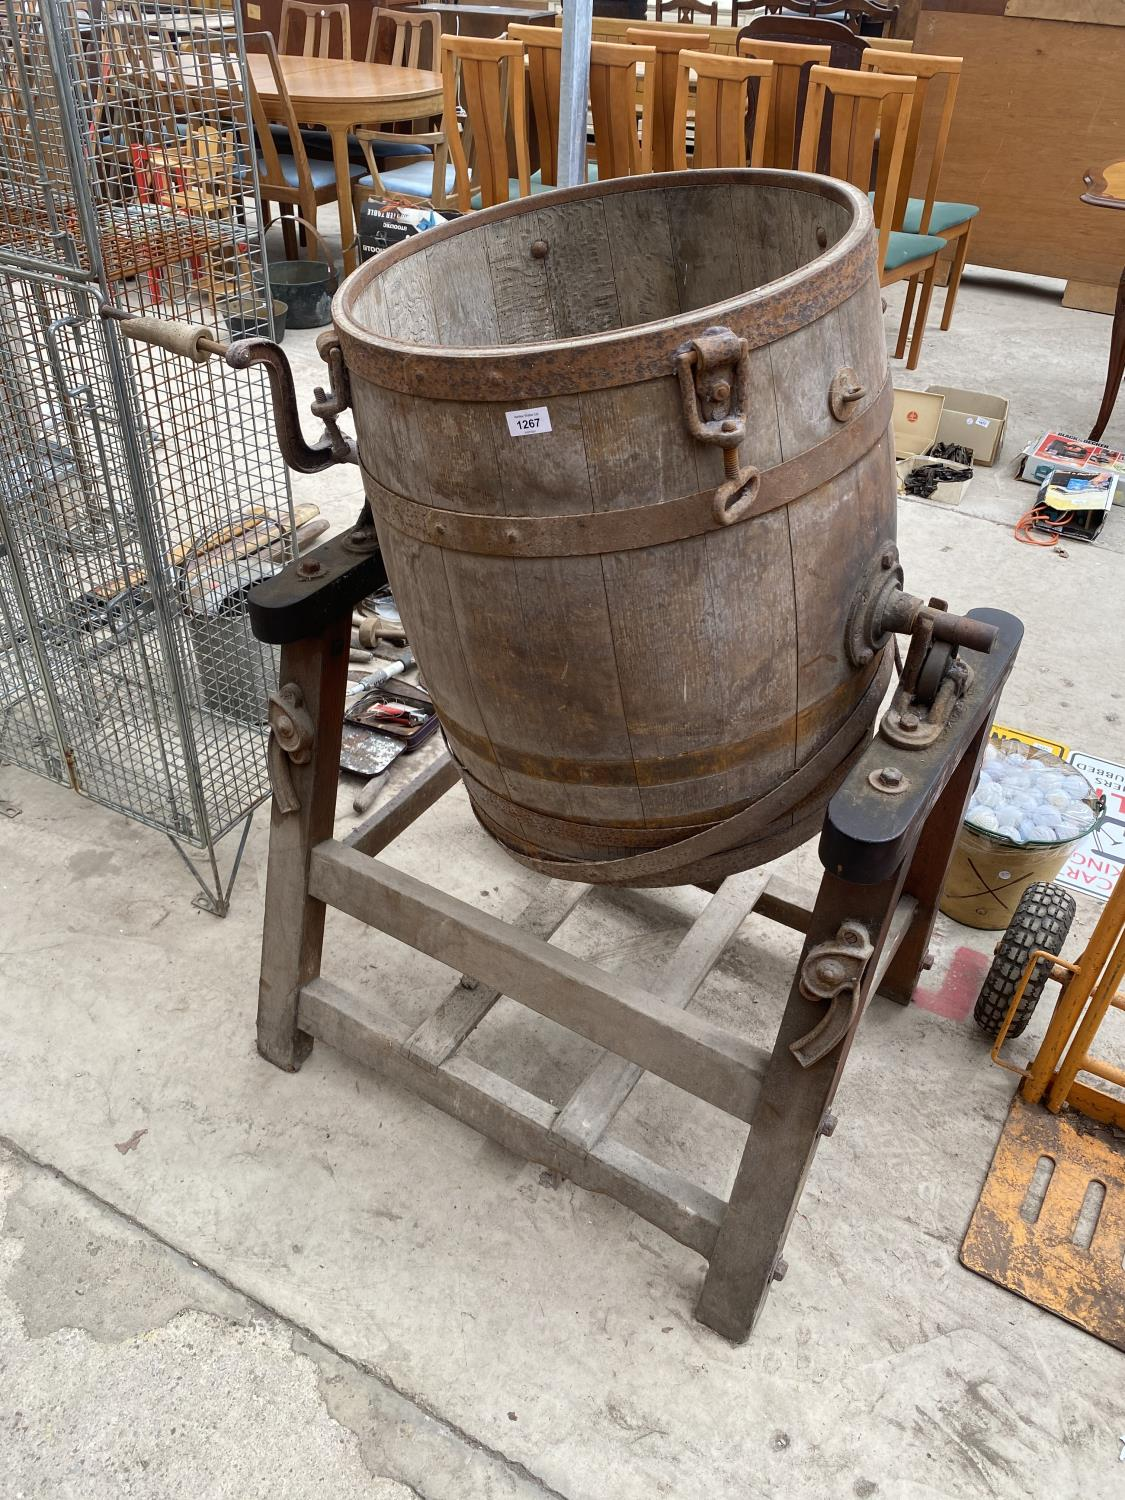 A LARGE VINTAGE BUTTER CHURN WITH STAND